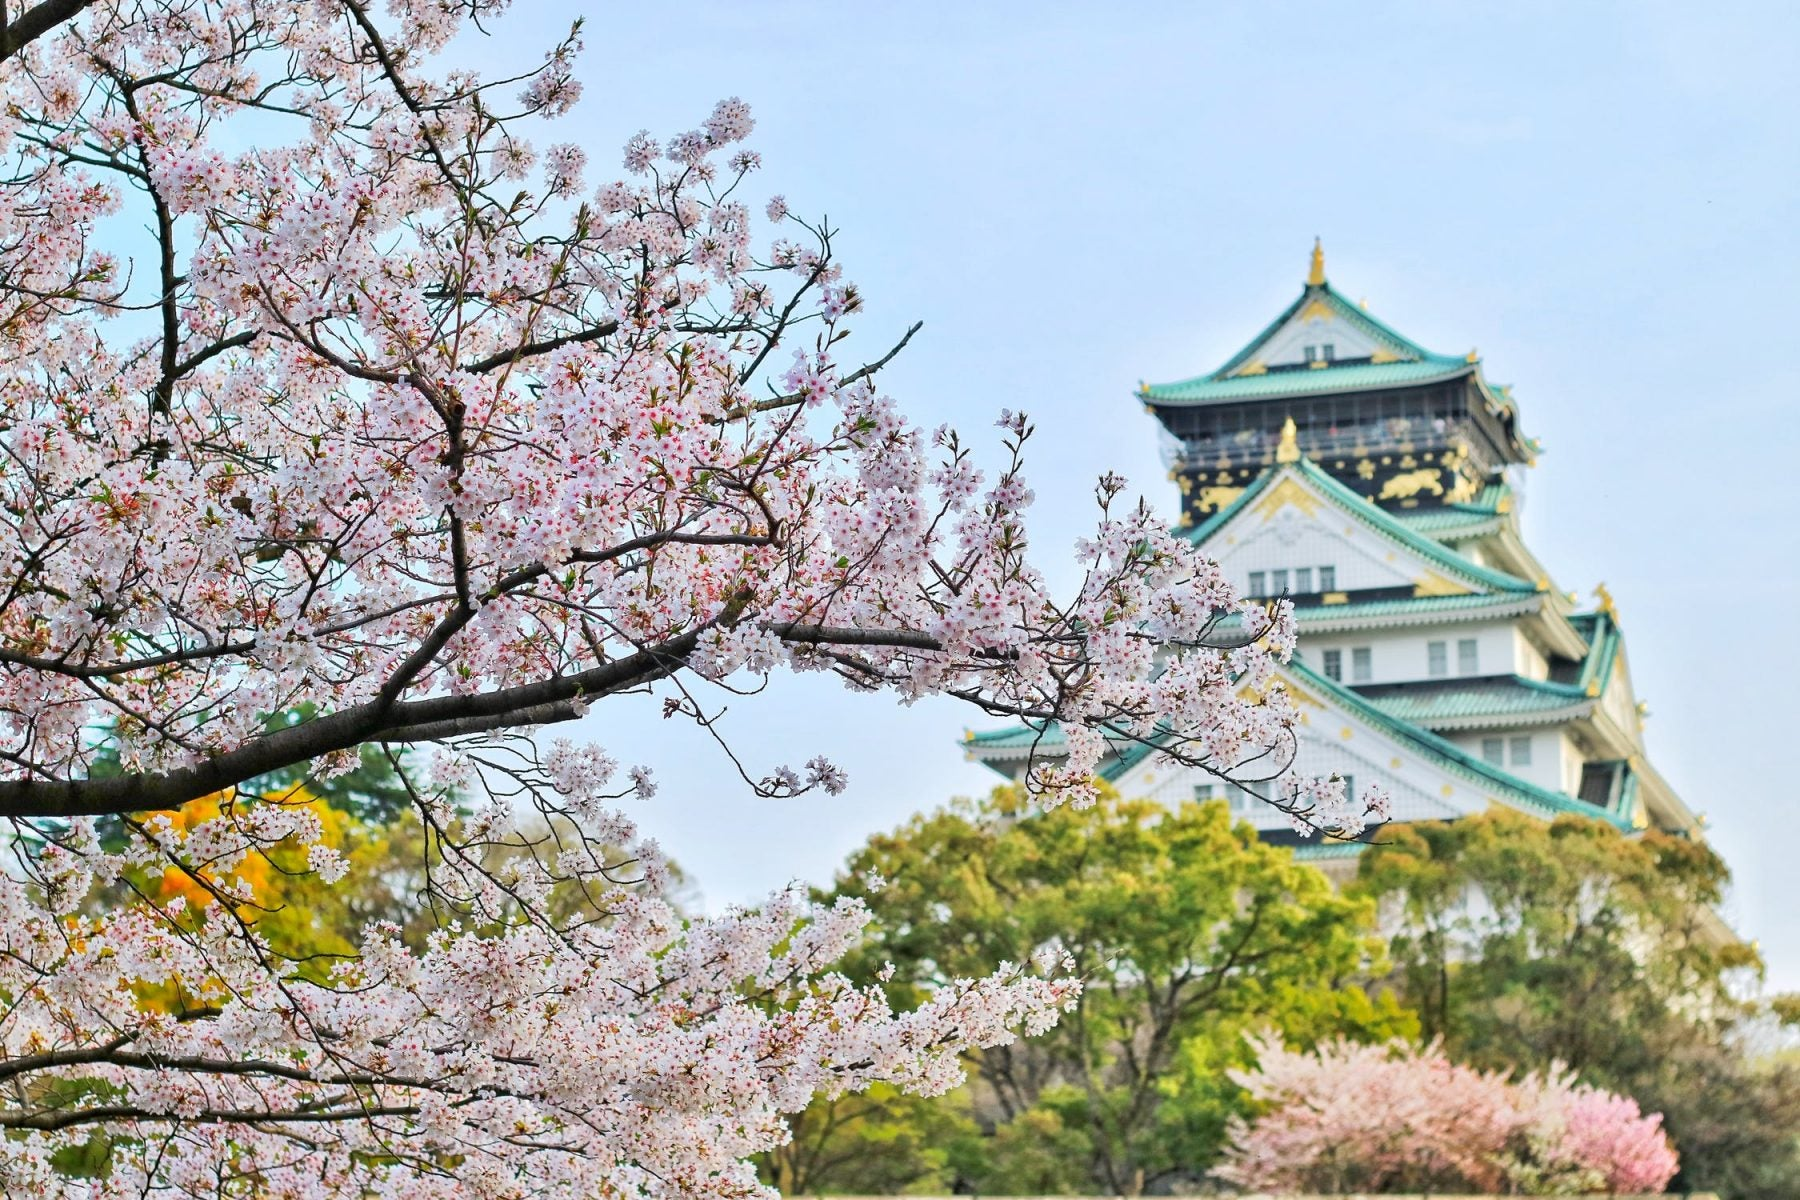 Don't Wait! Use American Airlines Miles to Book Flights to Japan Now, in Time for the Cherry Blossoms!